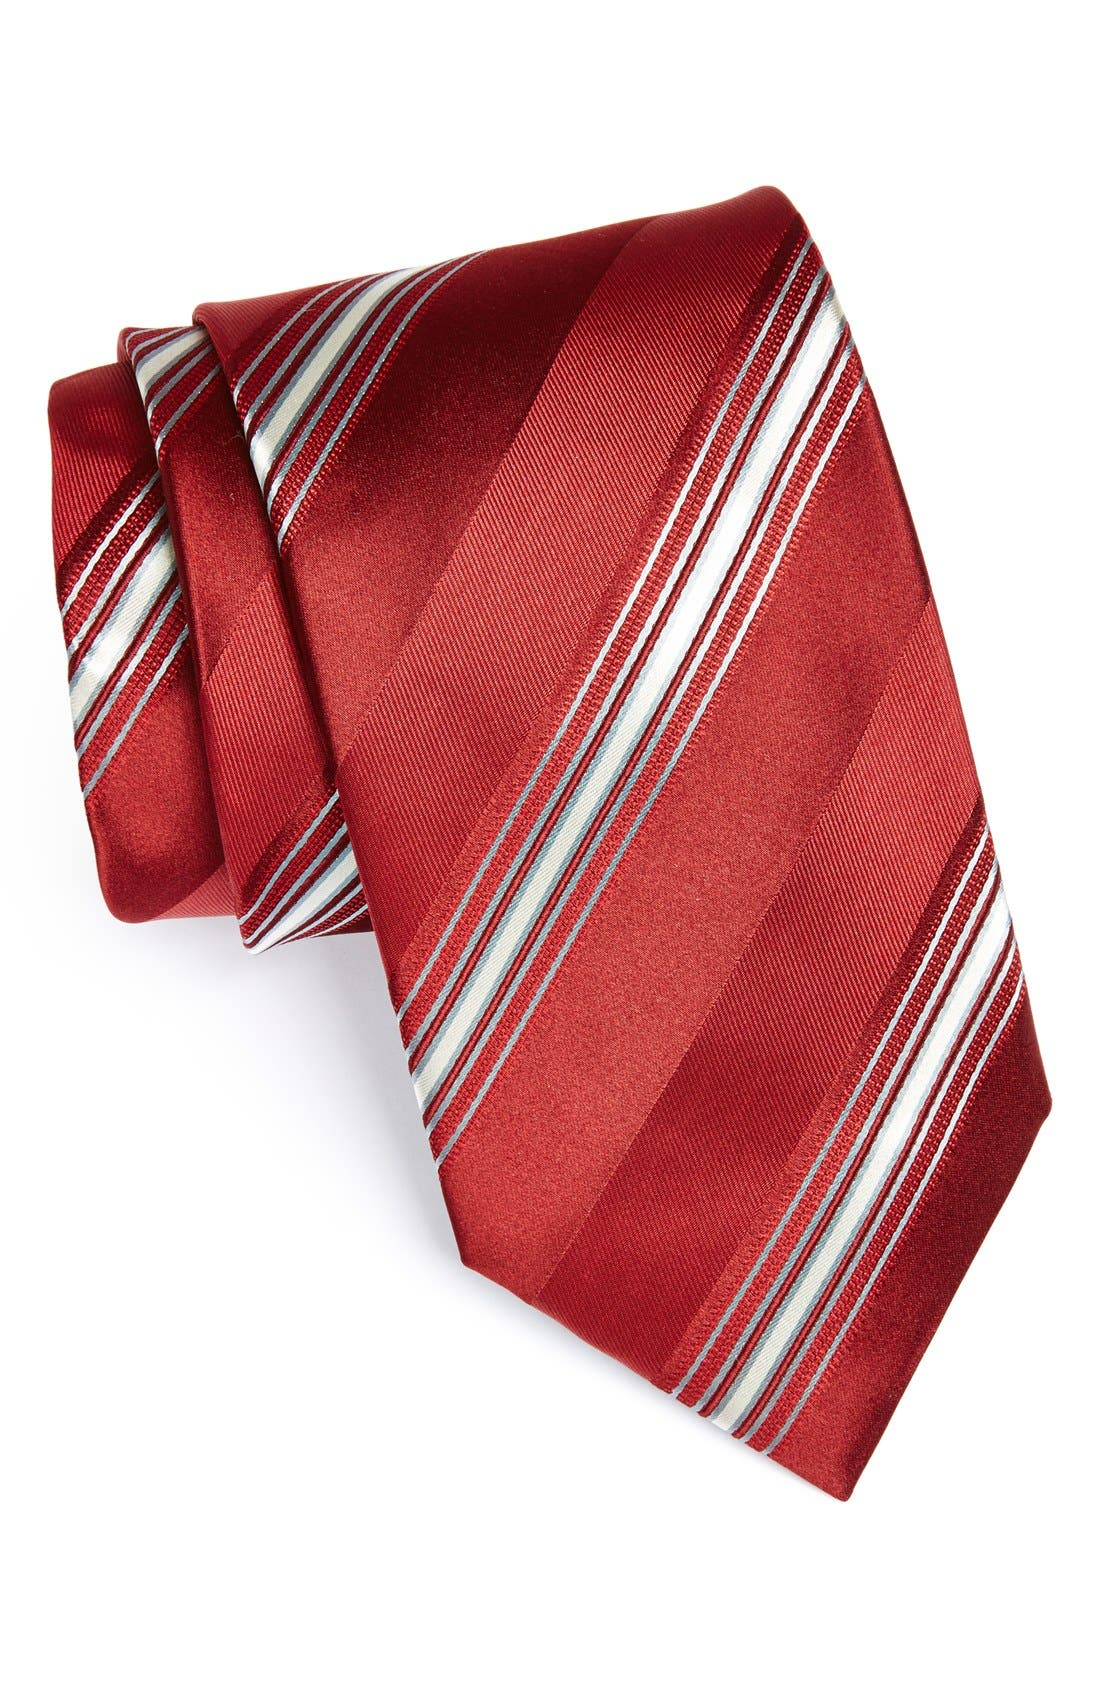 Alternate Image 1 Selected - Canali Stripe Woven Silk Tie